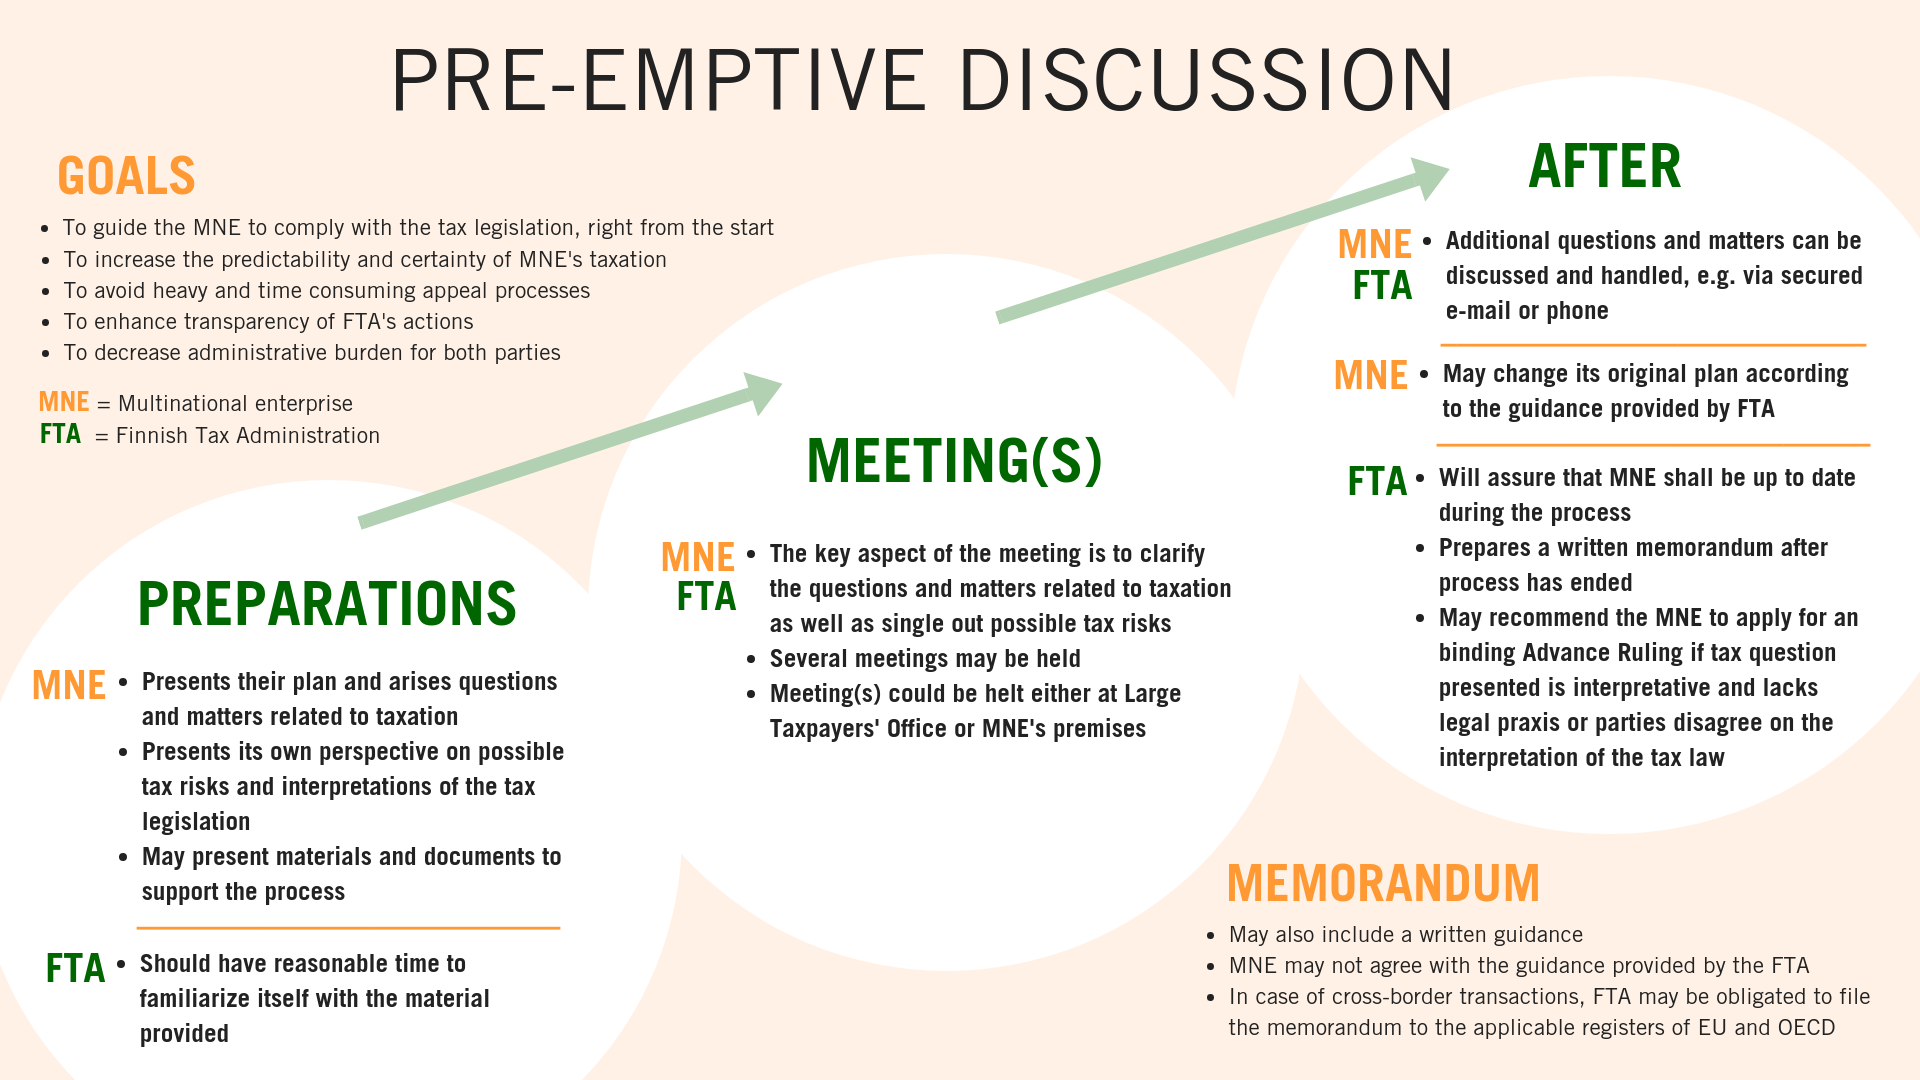 How pre-emptive discussion consists of, from the point of view of the enterprise as well as the Finnish Tax Administration. Preparations for the meeting, what happens in the meeting and after the meeting.